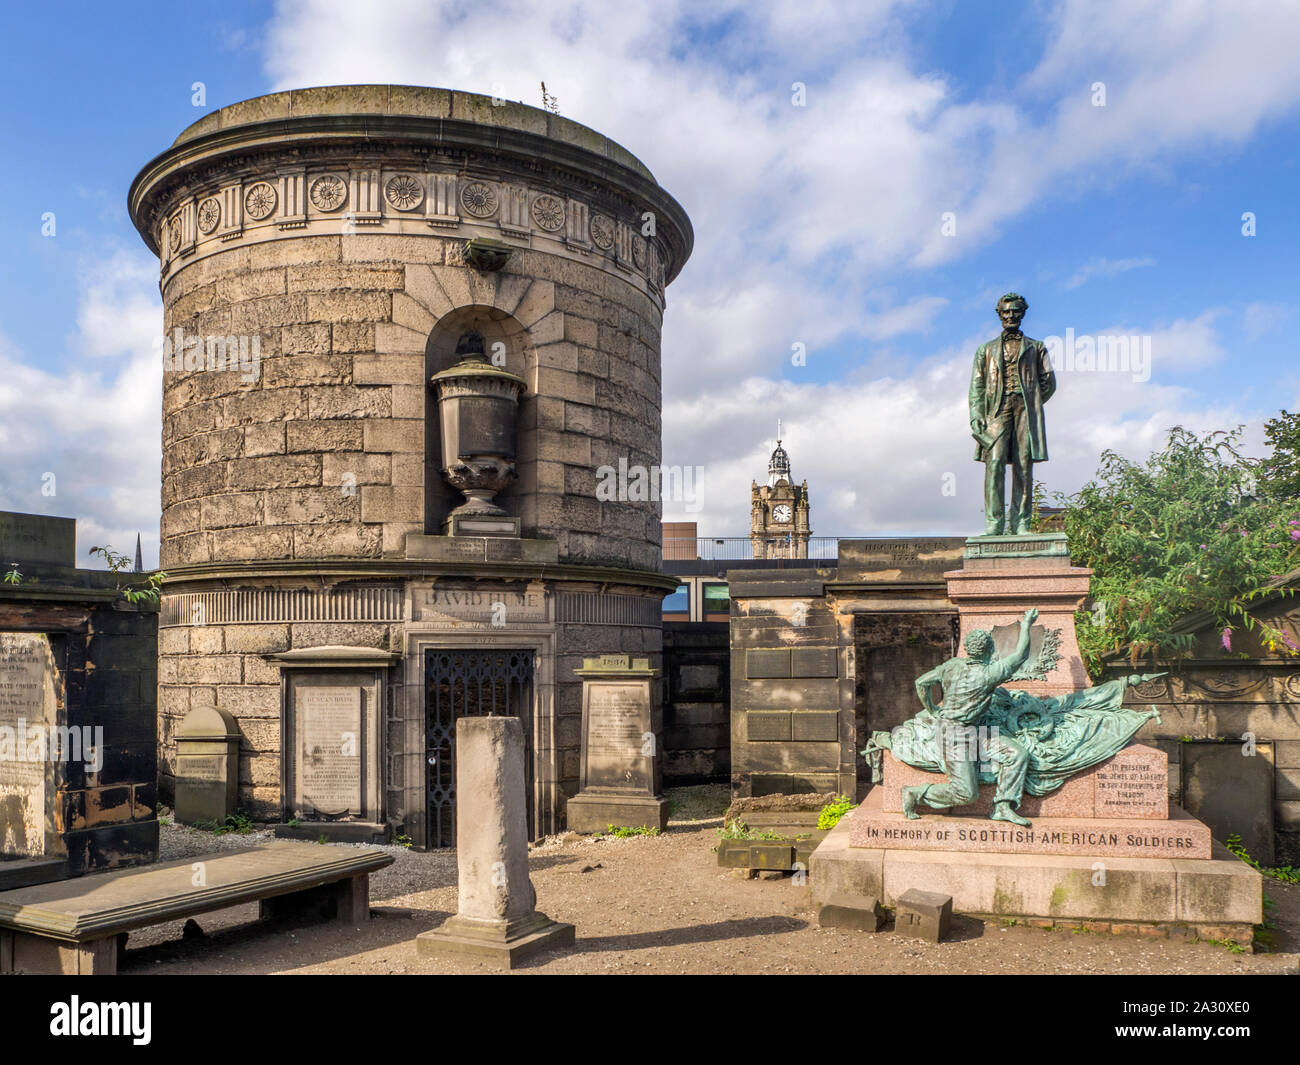 David Hume and Scottish American Soldiers monuments at Old Calton Burial Ground at Calton Hill Edinburgh Scotland Stock Photo